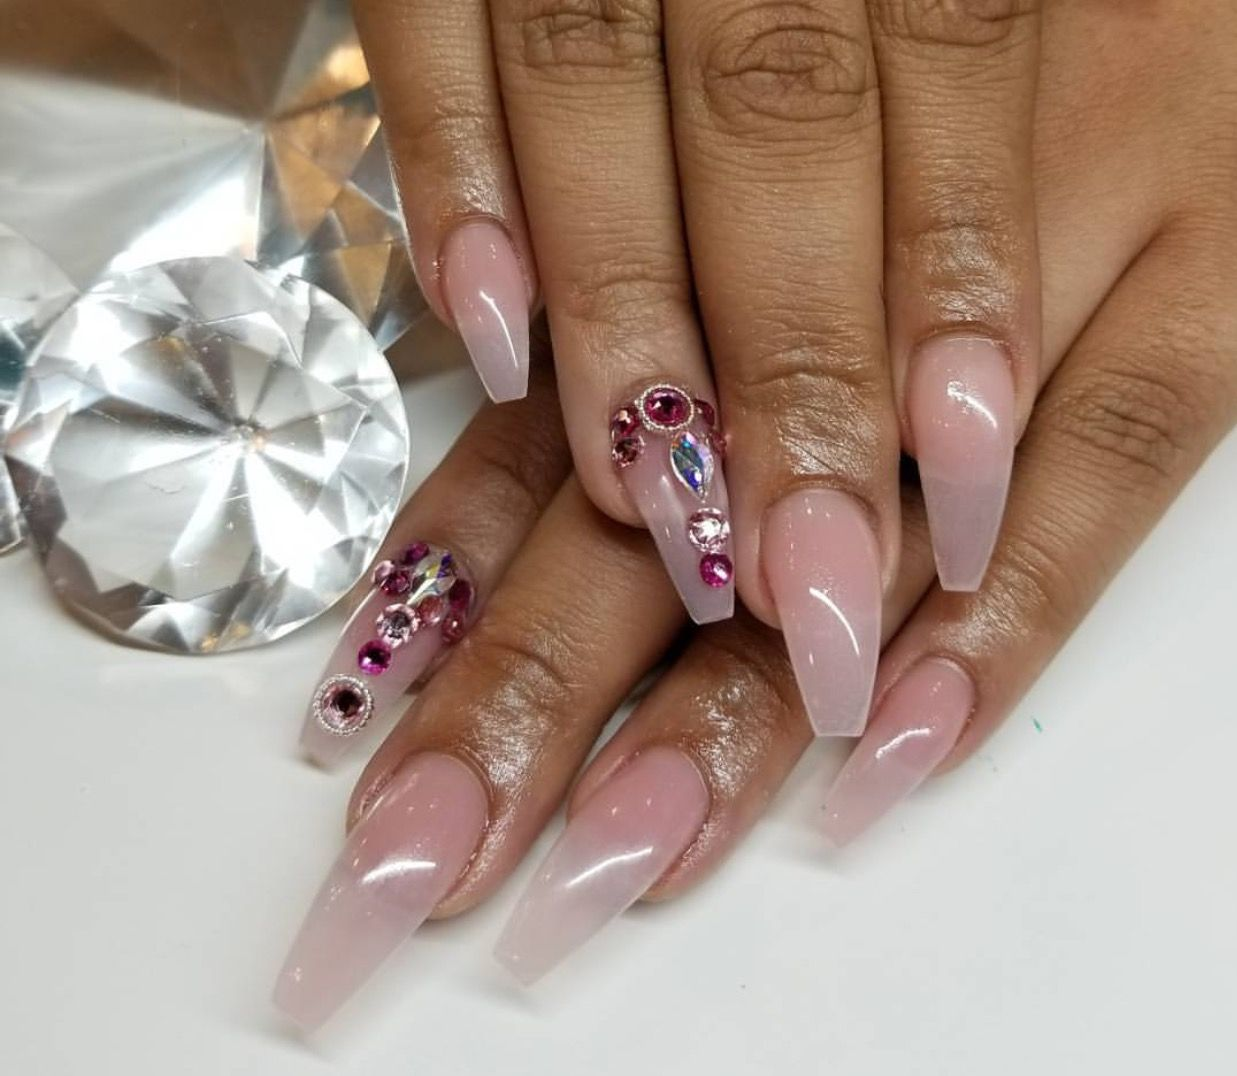 Pin by J.Cole\'s Daughter on NAILS | Pinterest | Fabulous nails